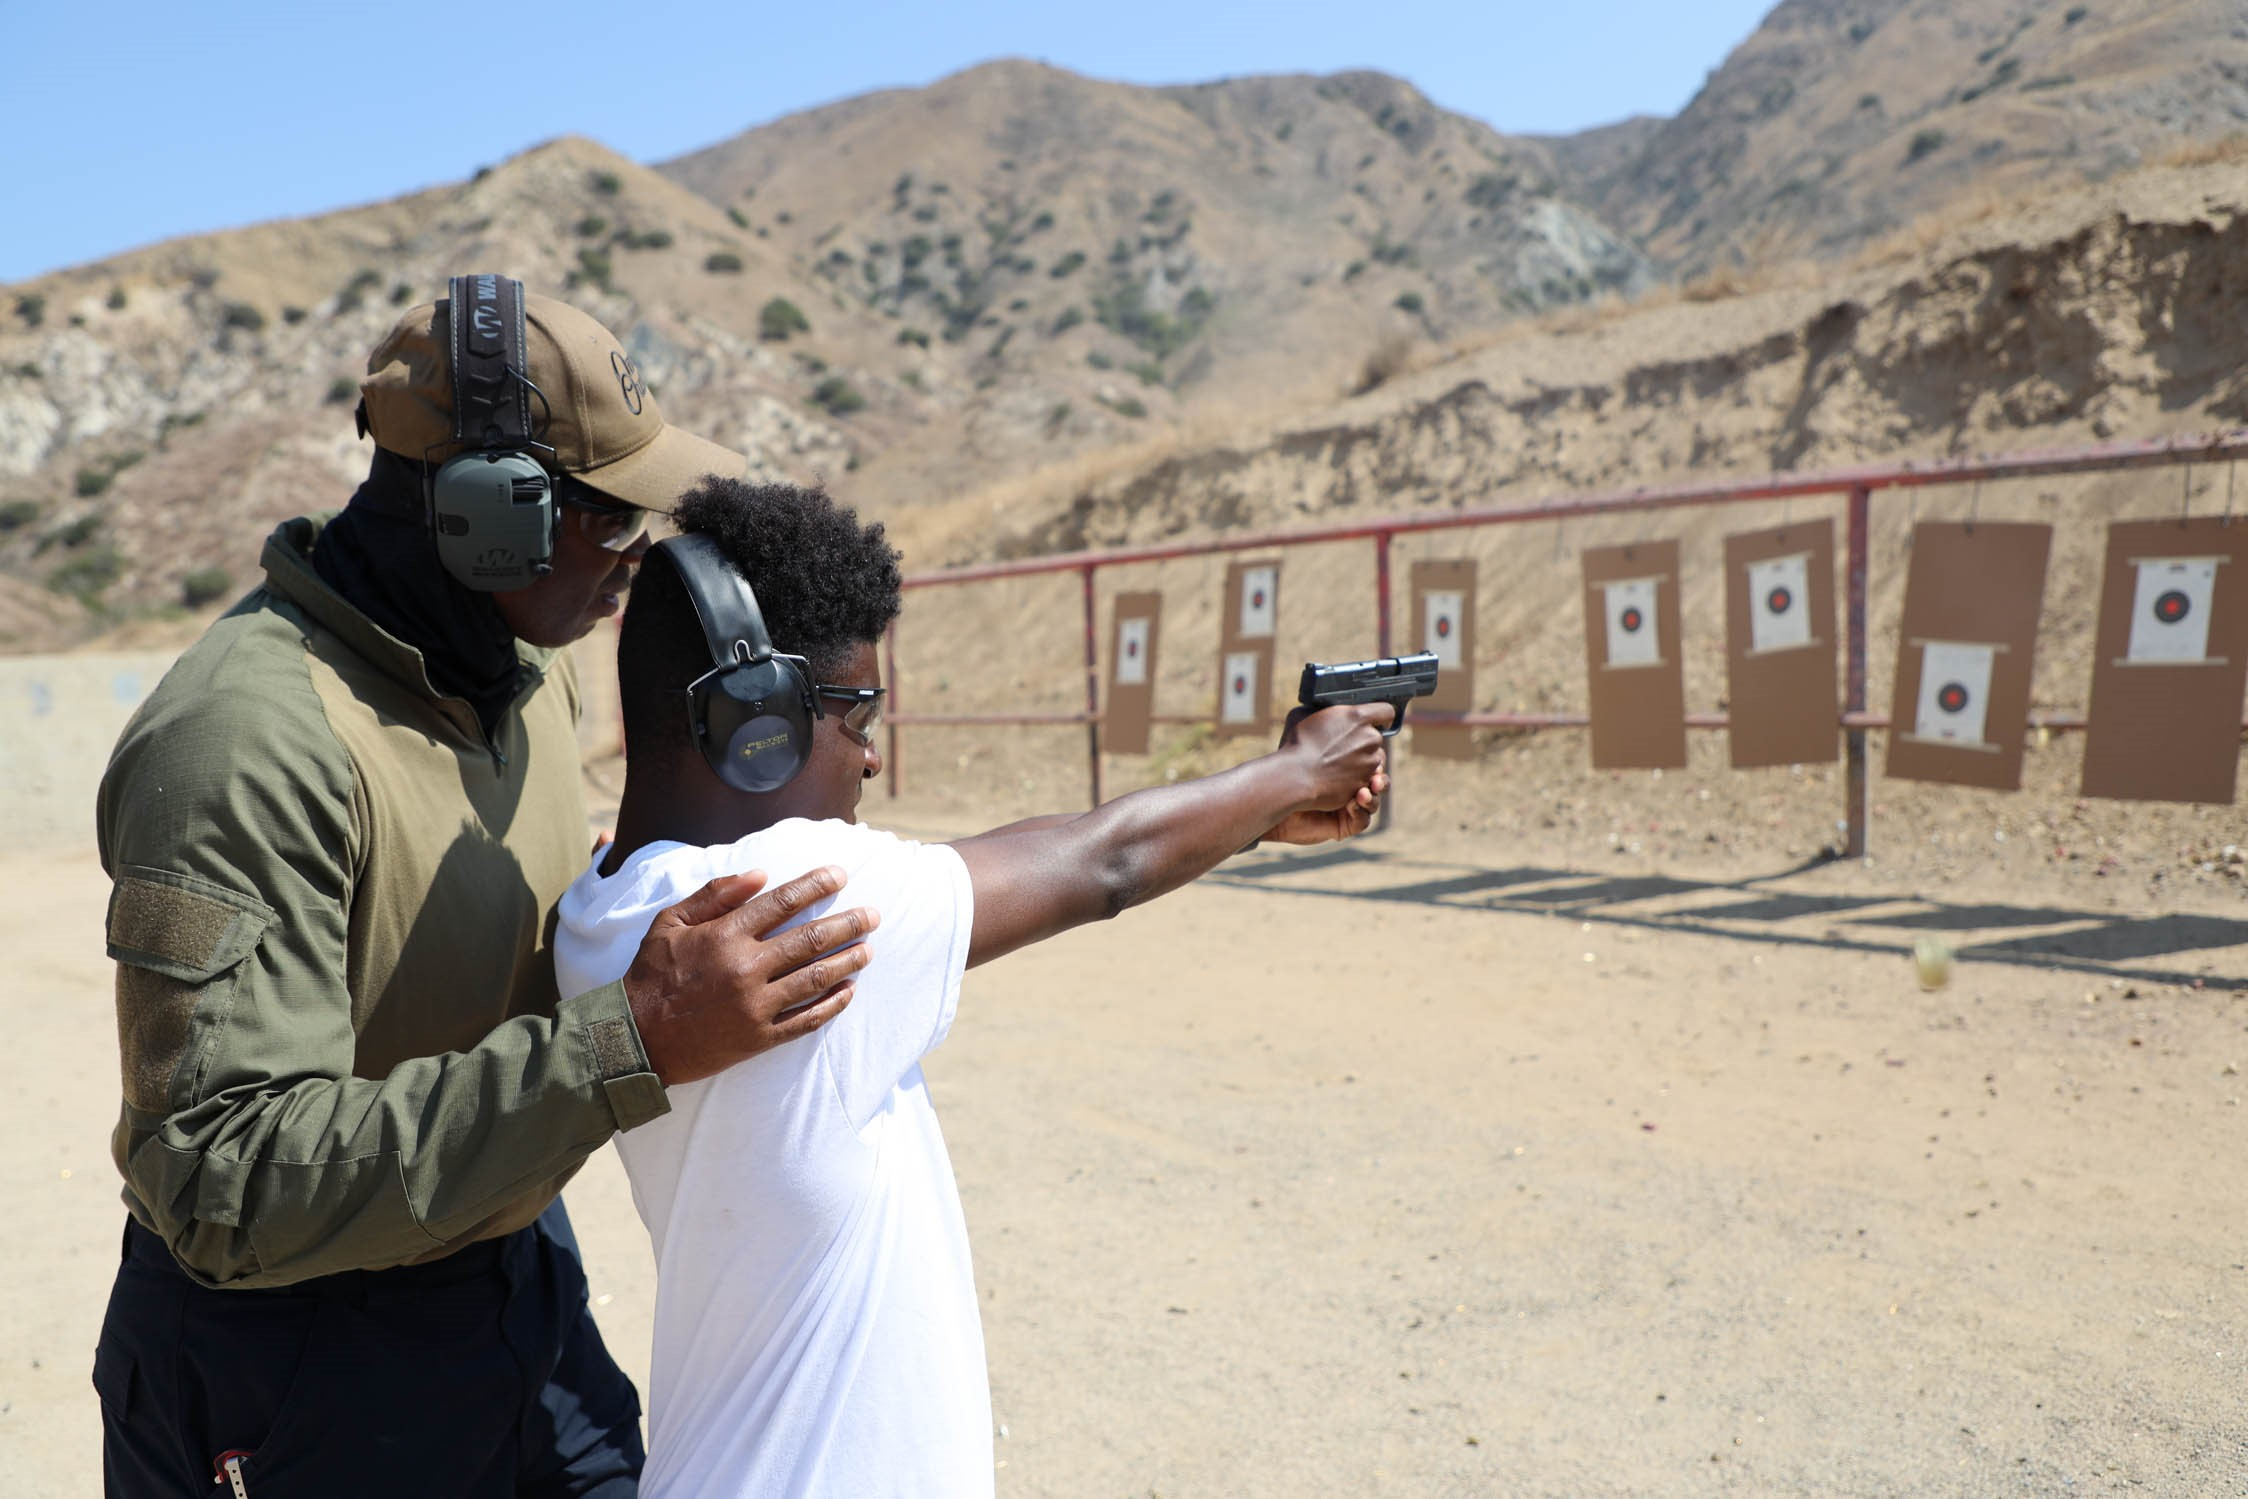 An instructor is watching over a student. The student has on large ear protectors and has a black handgun pointed at posted targets 20 feet away. the instructor is behind him with his hand on the studet's shoulder.